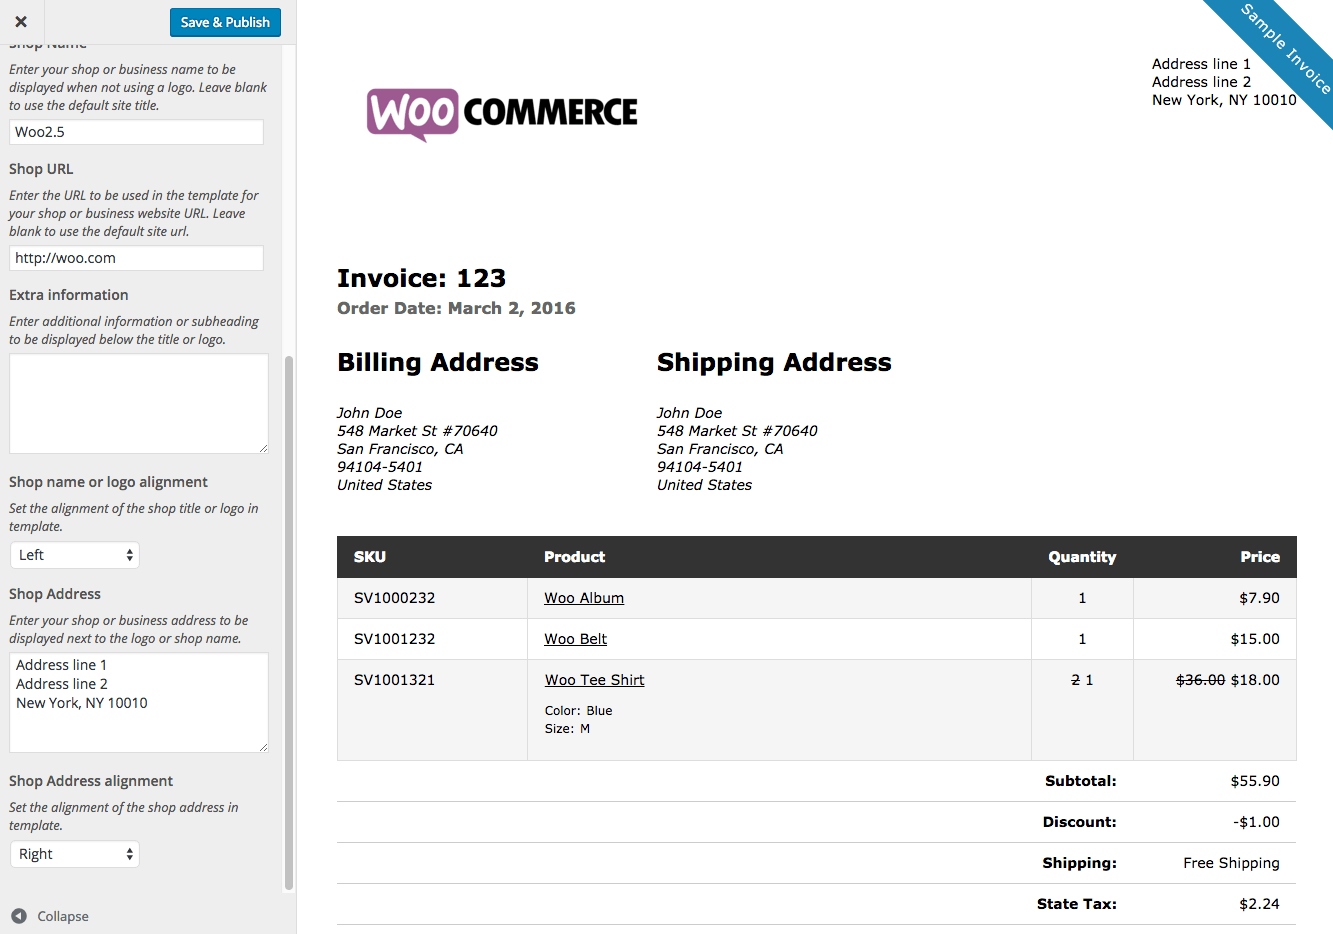 Angkajituus  Marvellous Woocommerce Print Invoices Amp Packing Lists  Woocommerce Docs With Lovely Woocommerce Print Invoices  Packing Lists Customizer With Comely Invoice Factoring Australia Also Non Payment Of Invoice In Addition Xero Custom Invoice And Invoice Template Word Document As Well As What Is A Invoice Used For Additionally Invoice Declaration From Docswoocommercecom With Angkajituus  Lovely Woocommerce Print Invoices Amp Packing Lists  Woocommerce Docs With Comely Woocommerce Print Invoices  Packing Lists Customizer And Marvellous Invoice Factoring Australia Also Non Payment Of Invoice In Addition Xero Custom Invoice From Docswoocommercecom